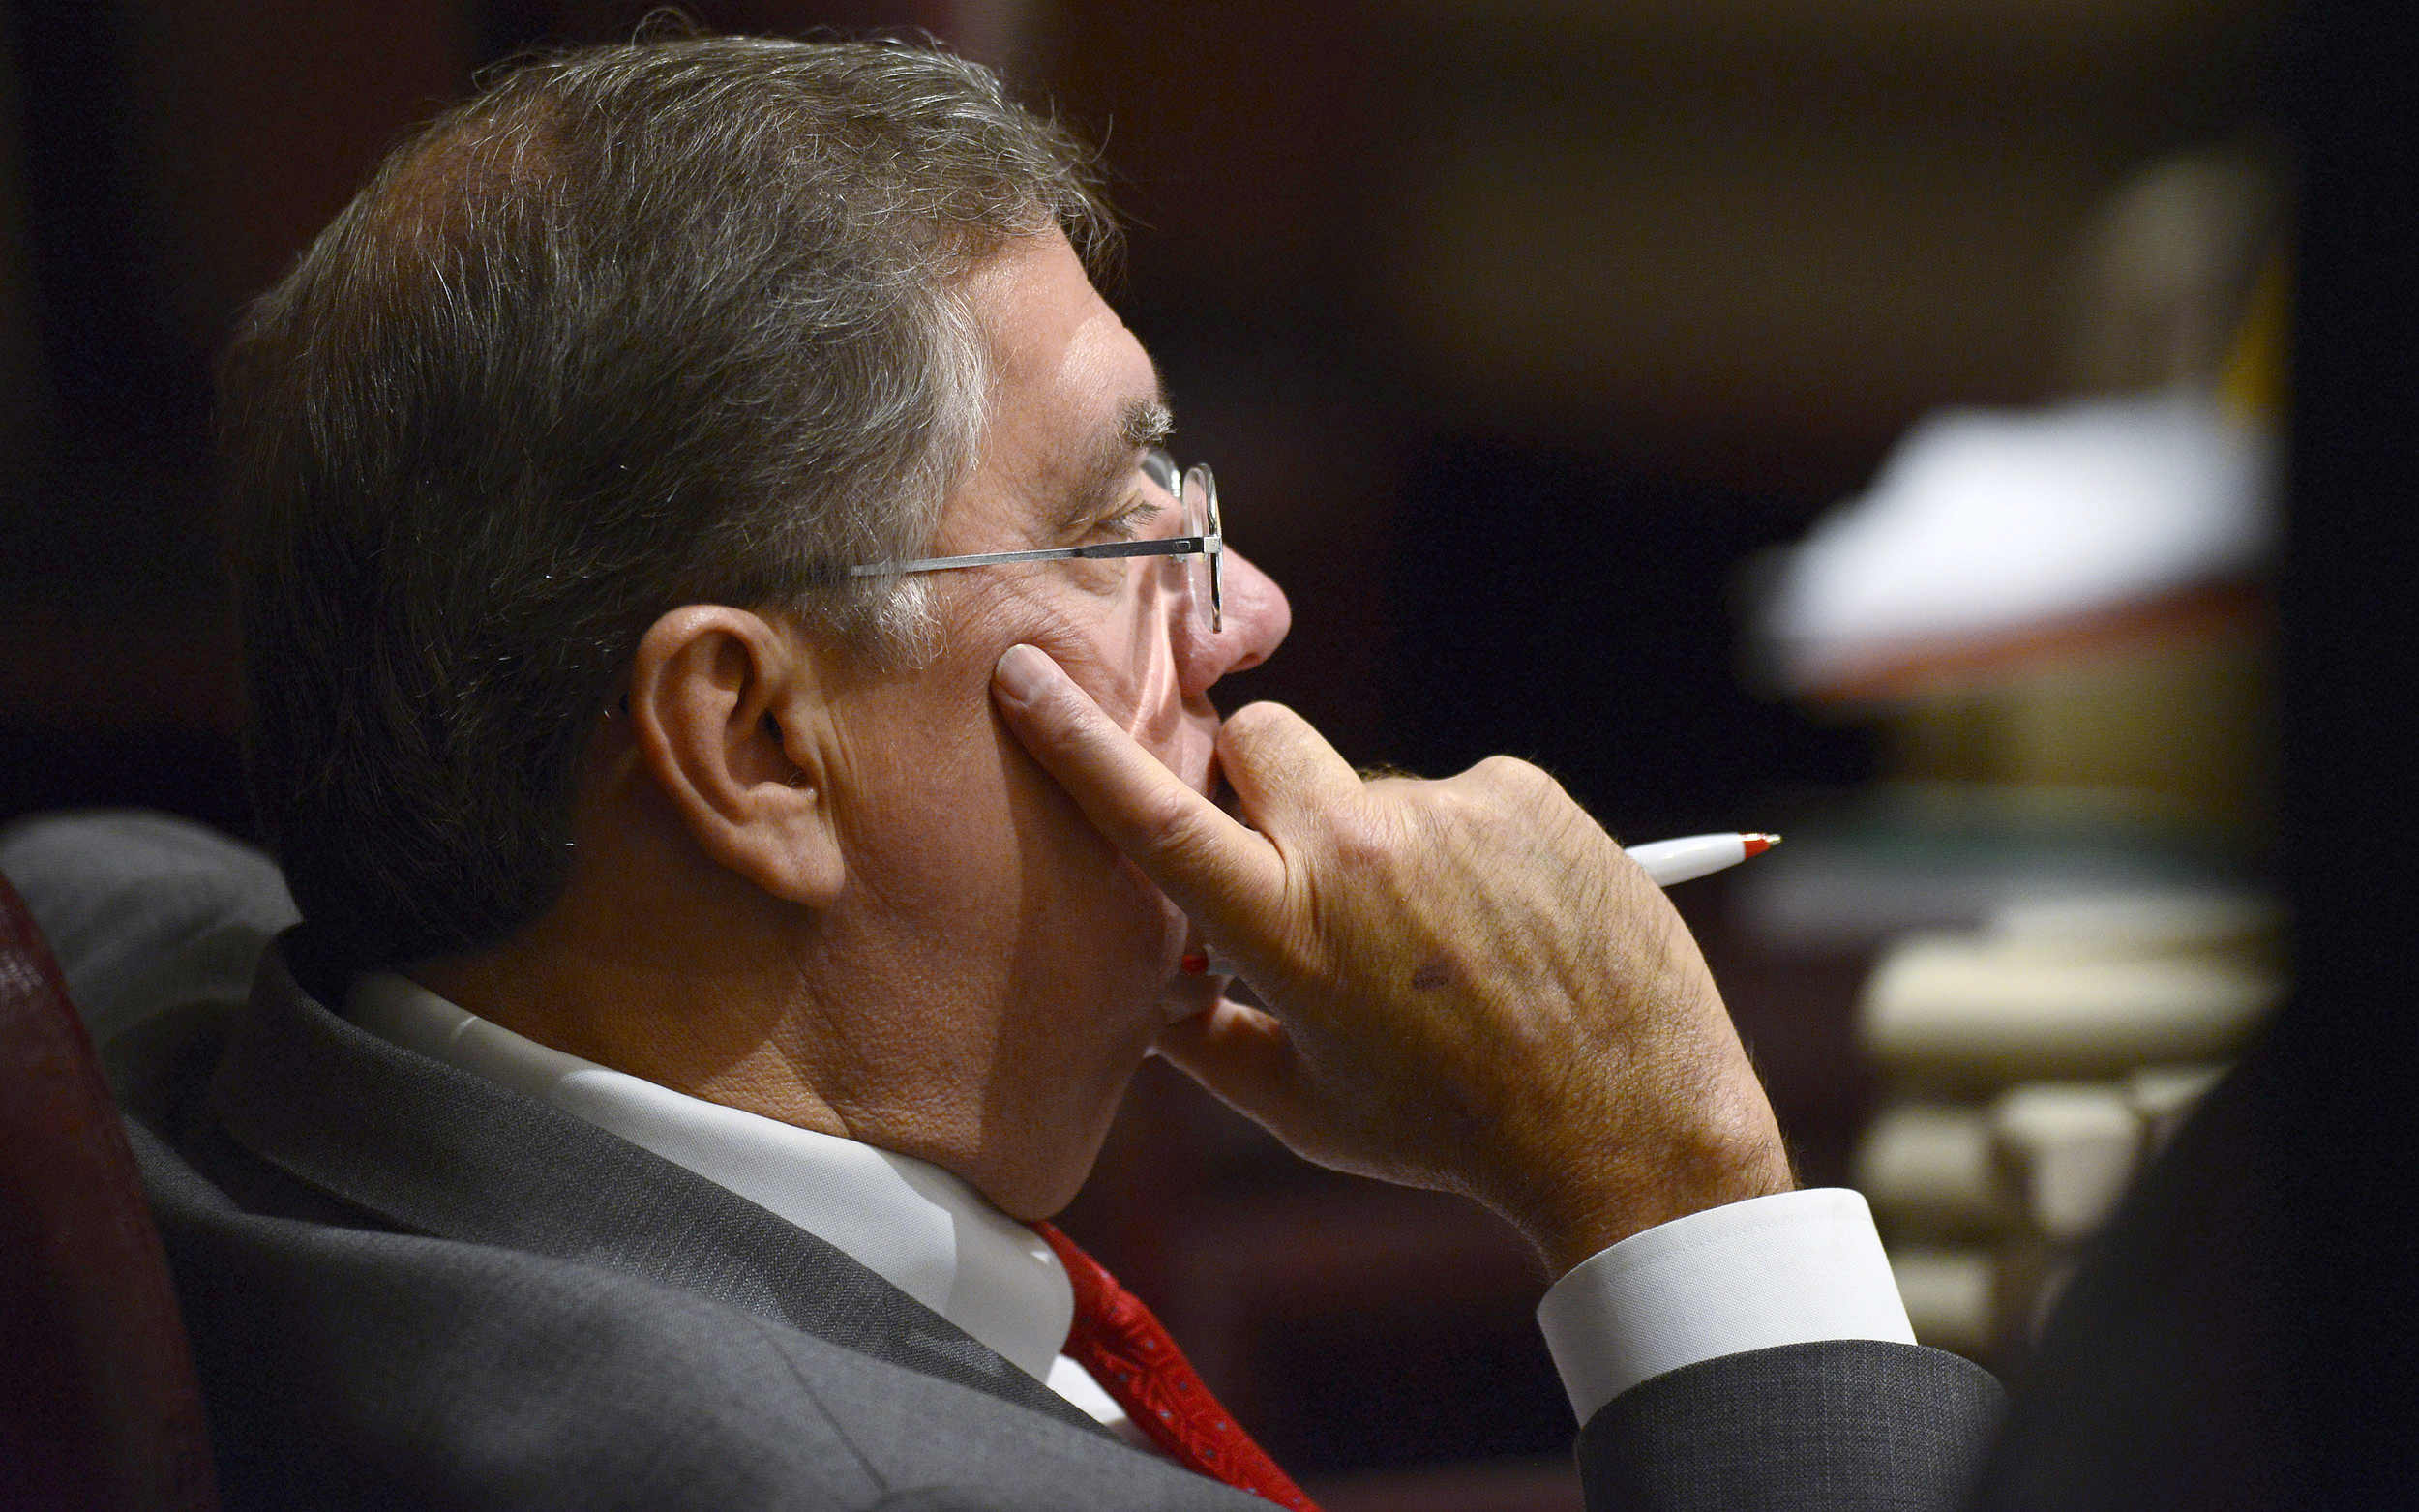 Child Sex Offenders Will Be Chemically Castrated Under Newly Enforced Alabama Law